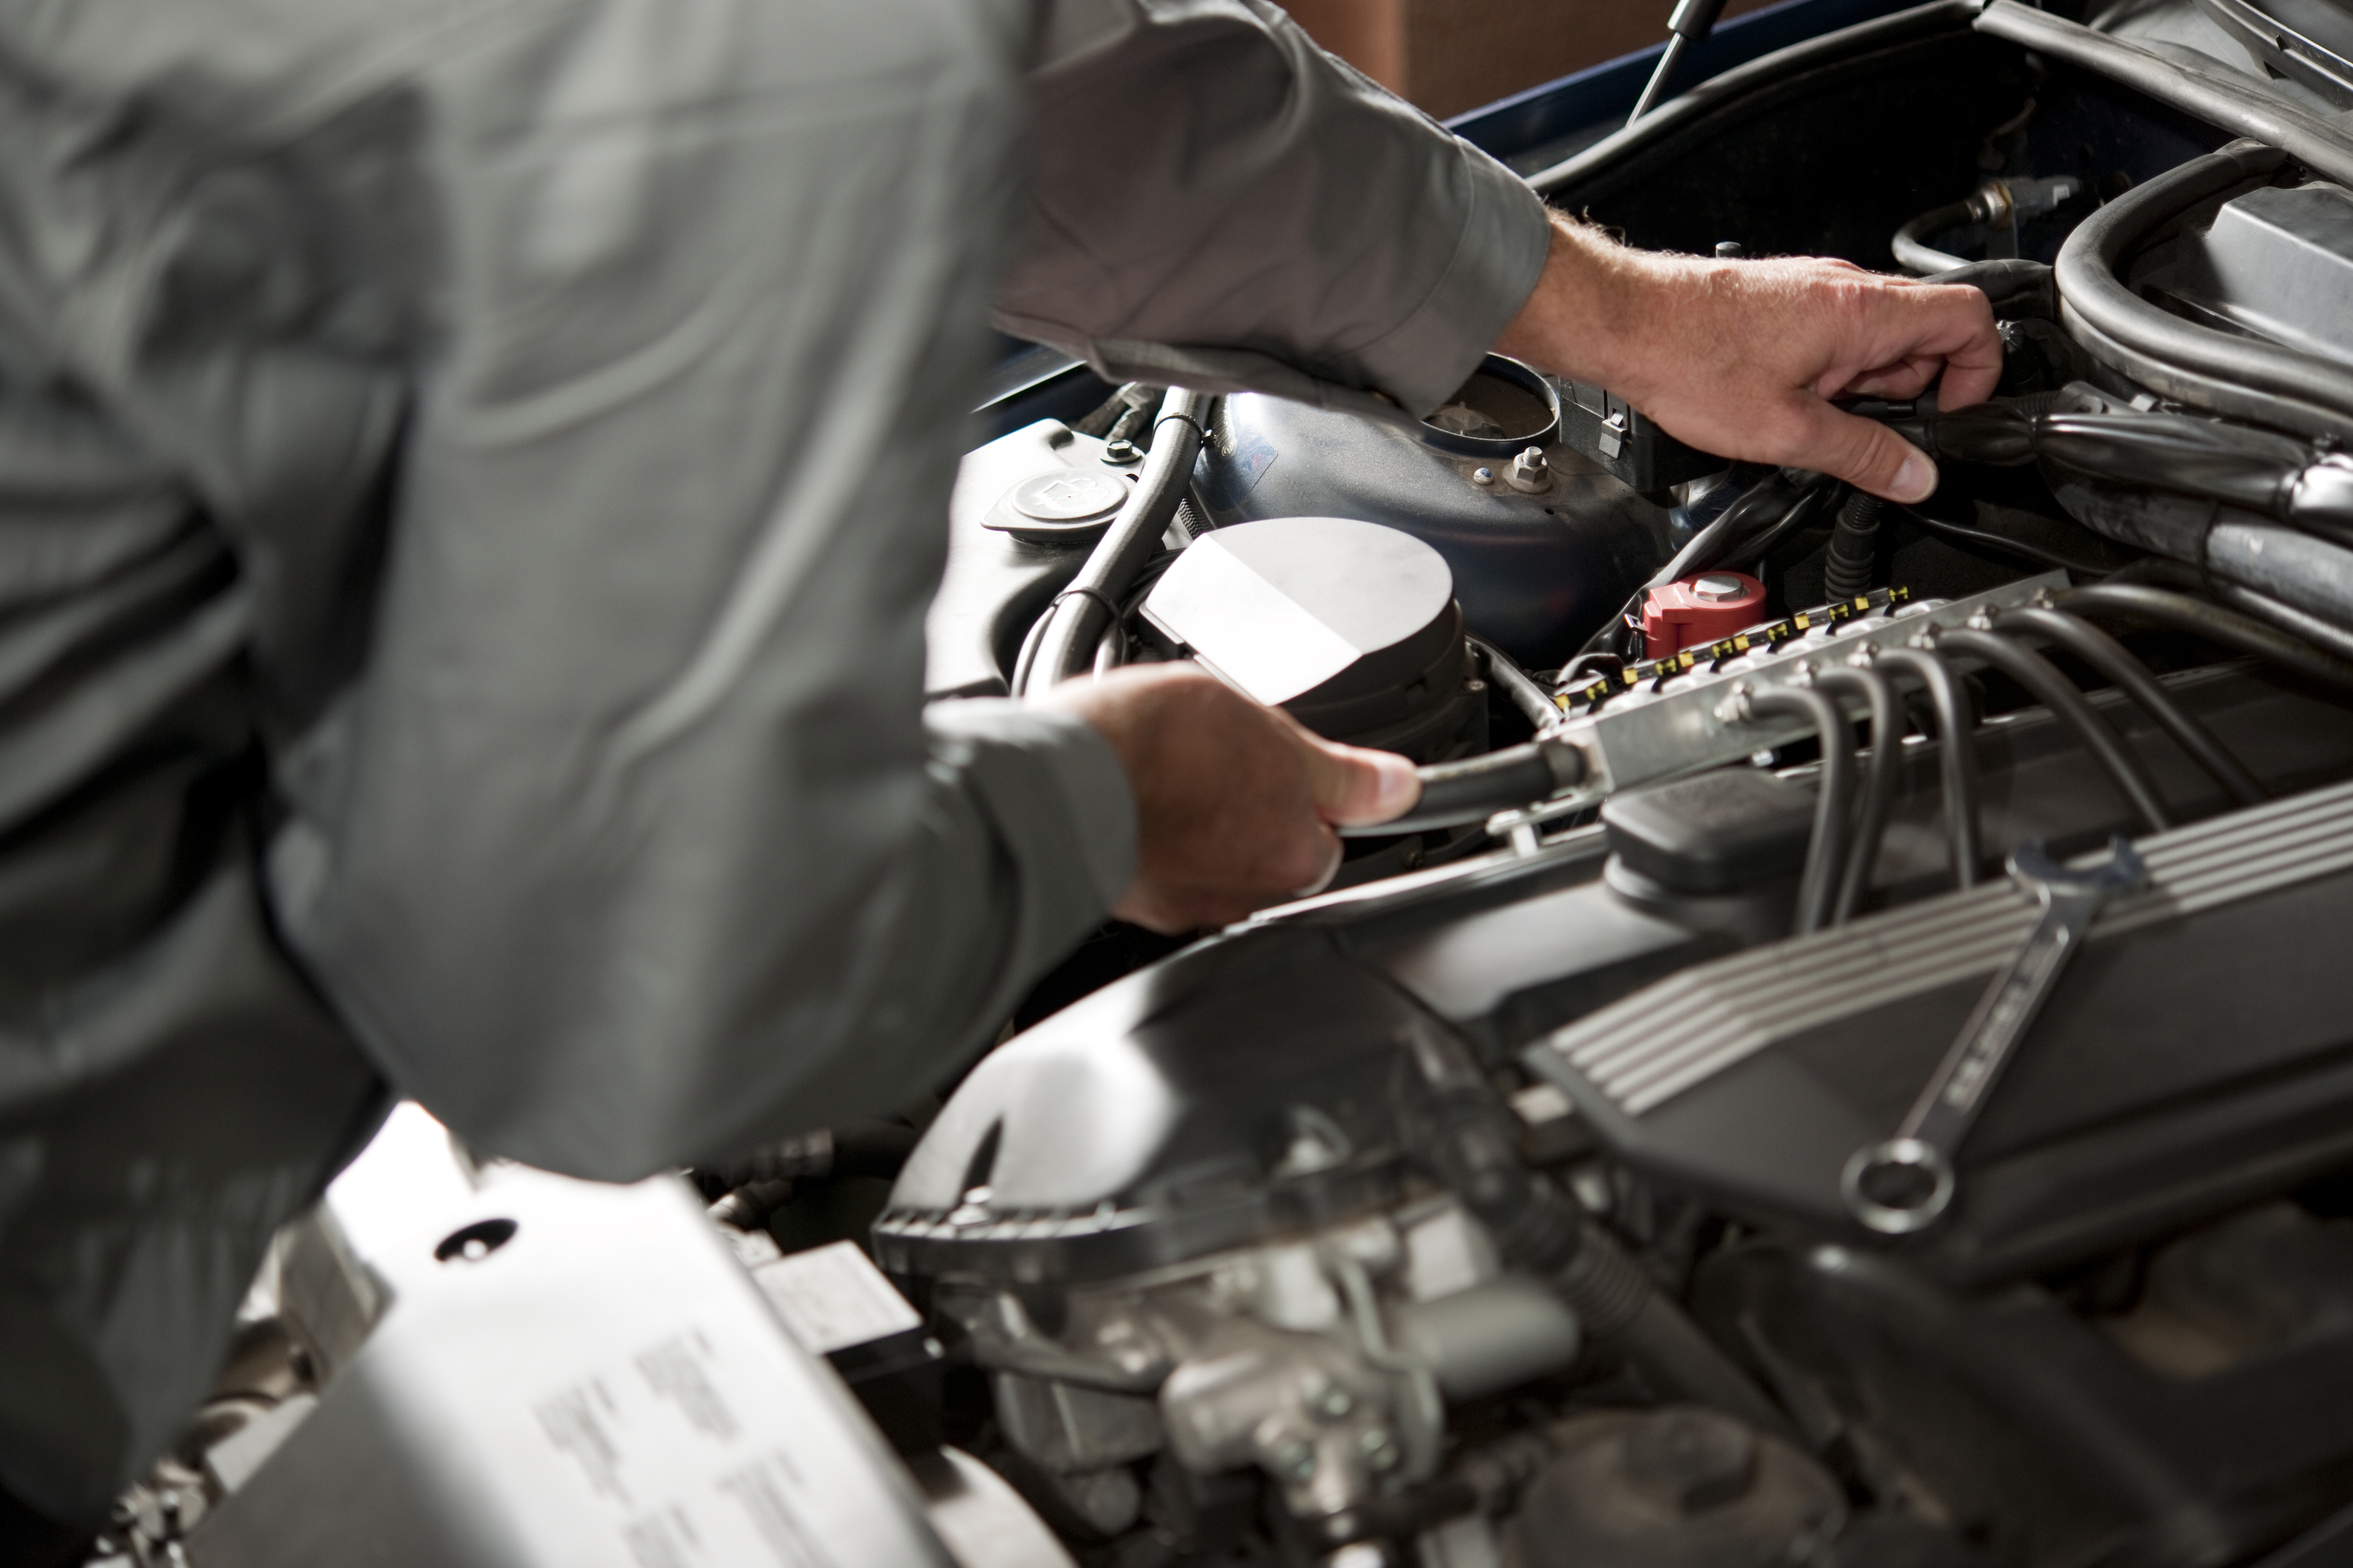 Is Gearbox Also an Important Part of Your Car?